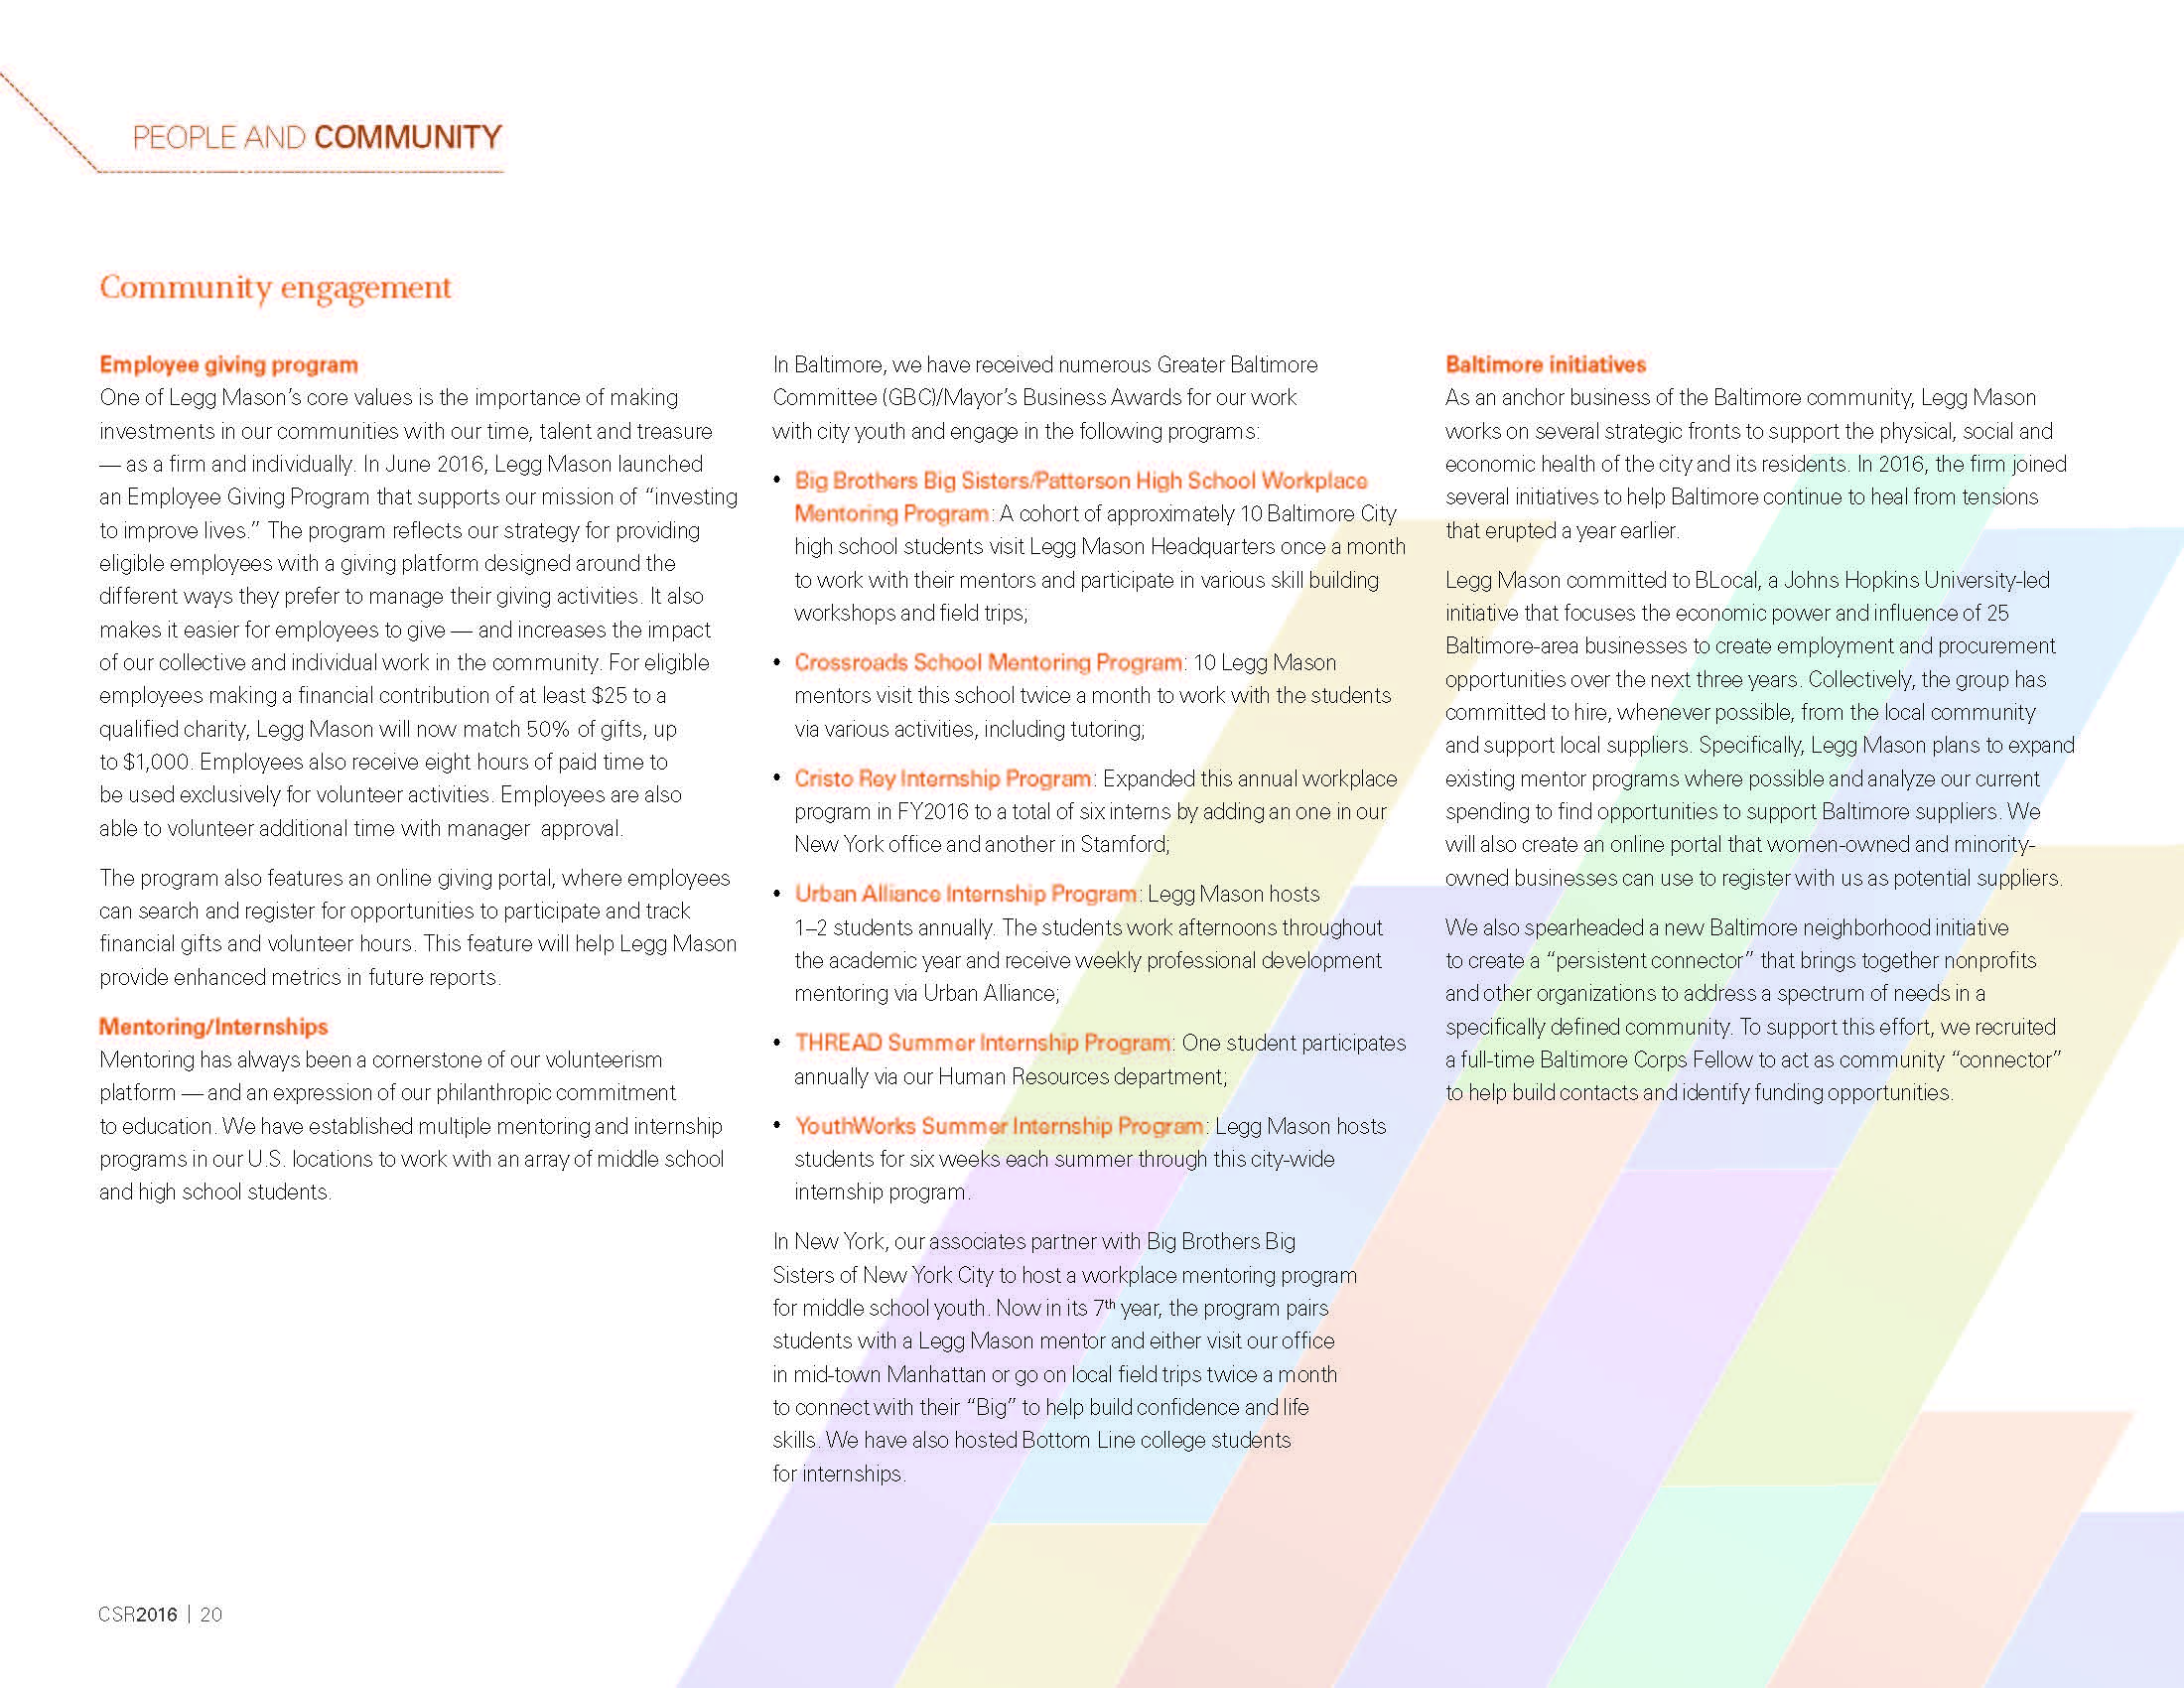 lm-csr-report_Page_20.jpg